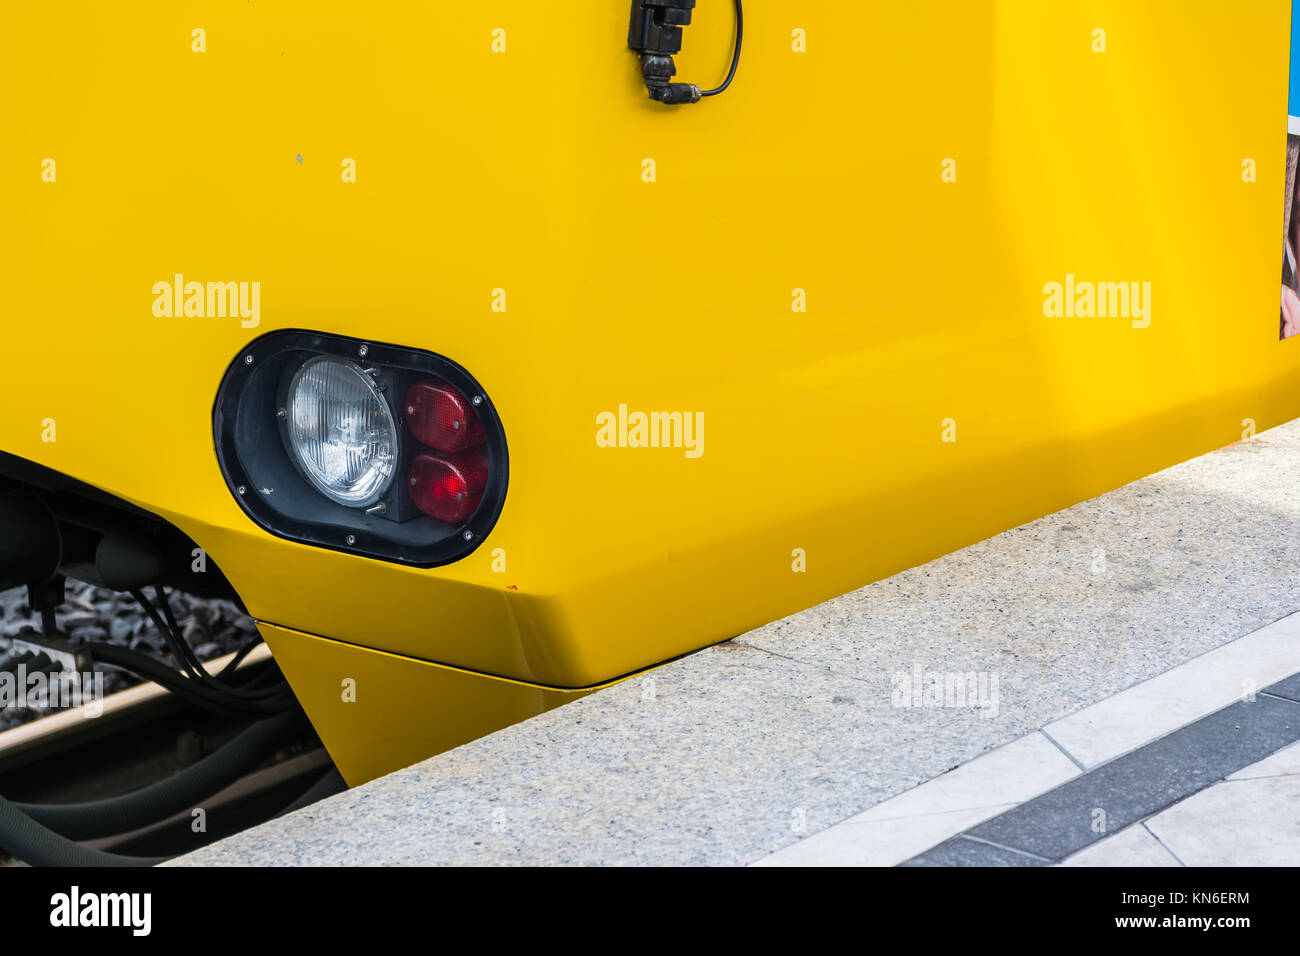 Train Headlight Stock Photos Images Alamy Head Lights For Model Trains Subway Arriving Red White Light Daytime Yellow Side Abstract Bright Concrete Platform Closeup Detail